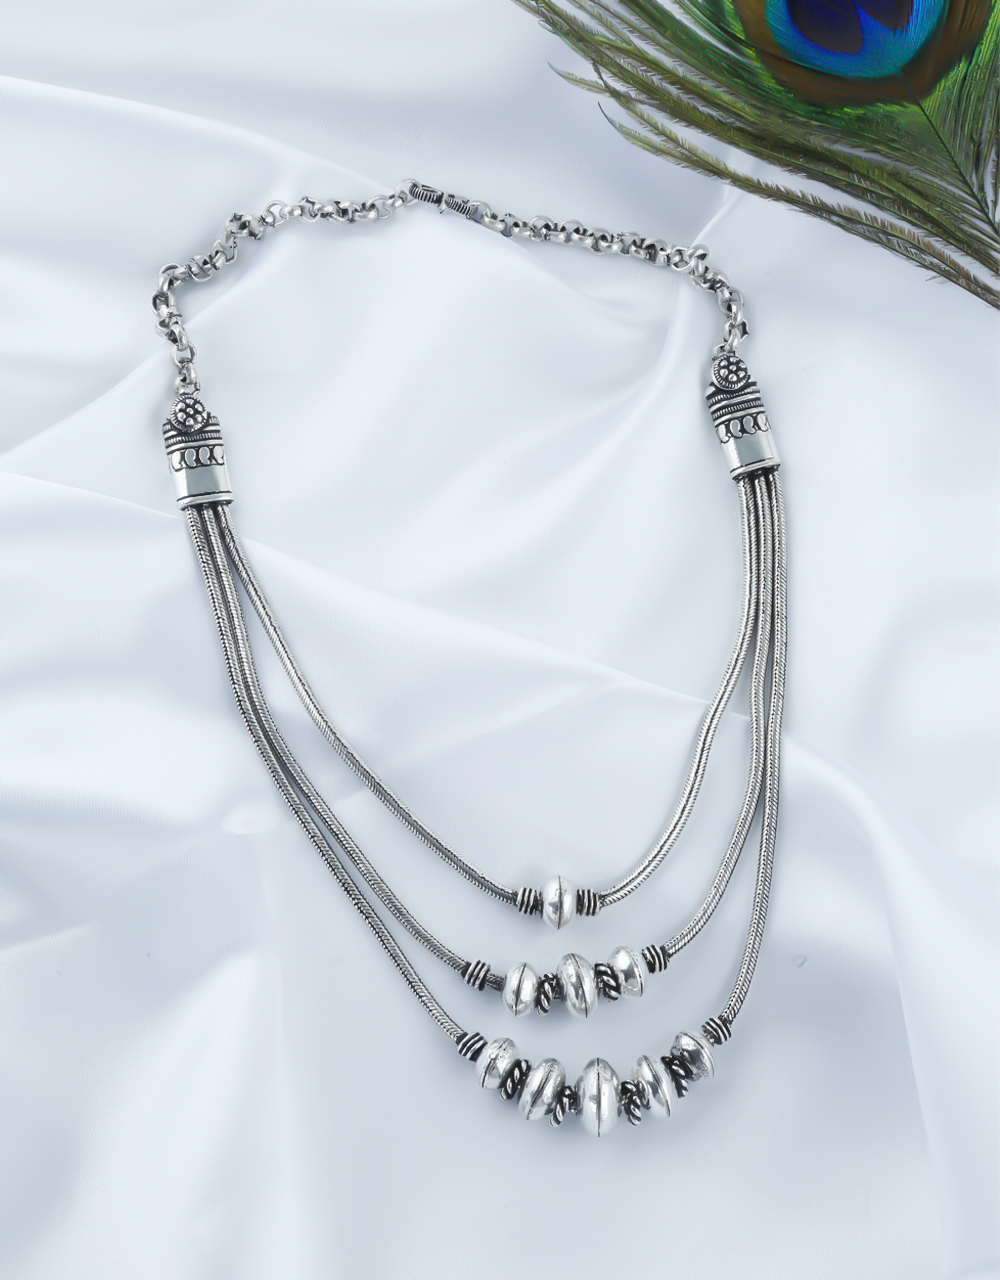 Silver Oxidised Finish Layered Necklace For Girls